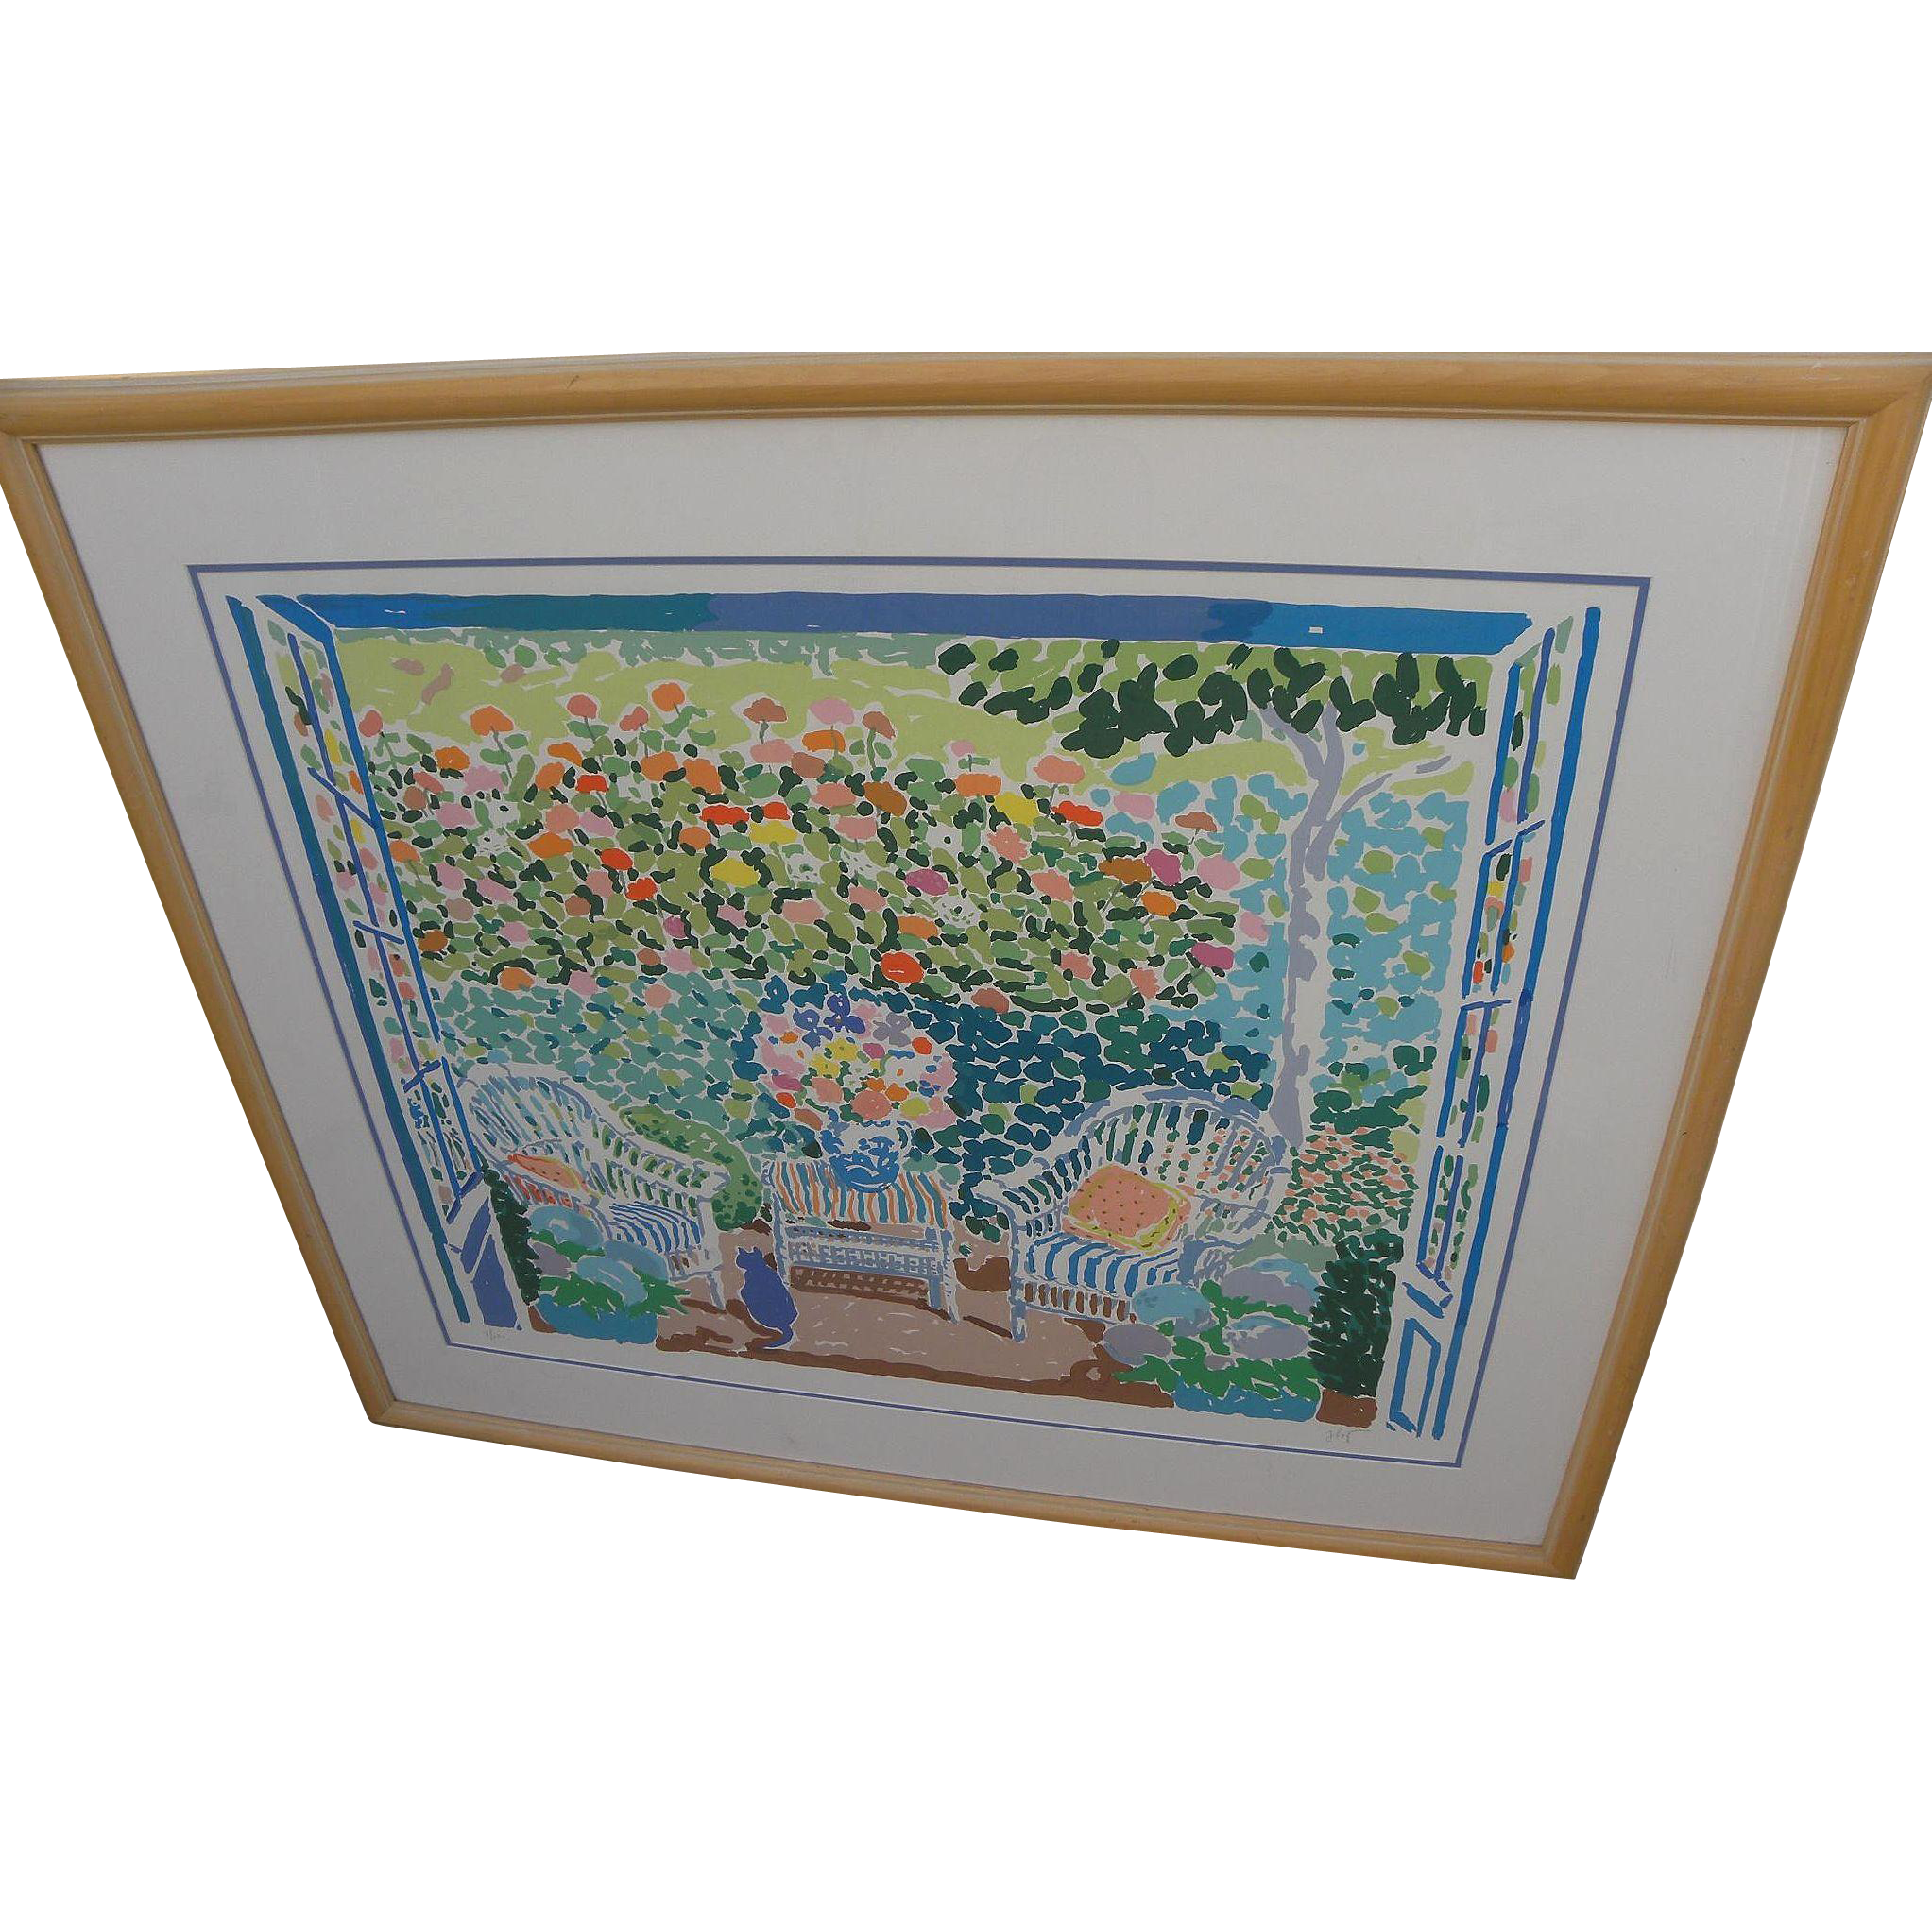 JOHN BOTZ (20th century American) large colorful post impressionist limited edition hand signed print of a sunny patio by noted artist and designer